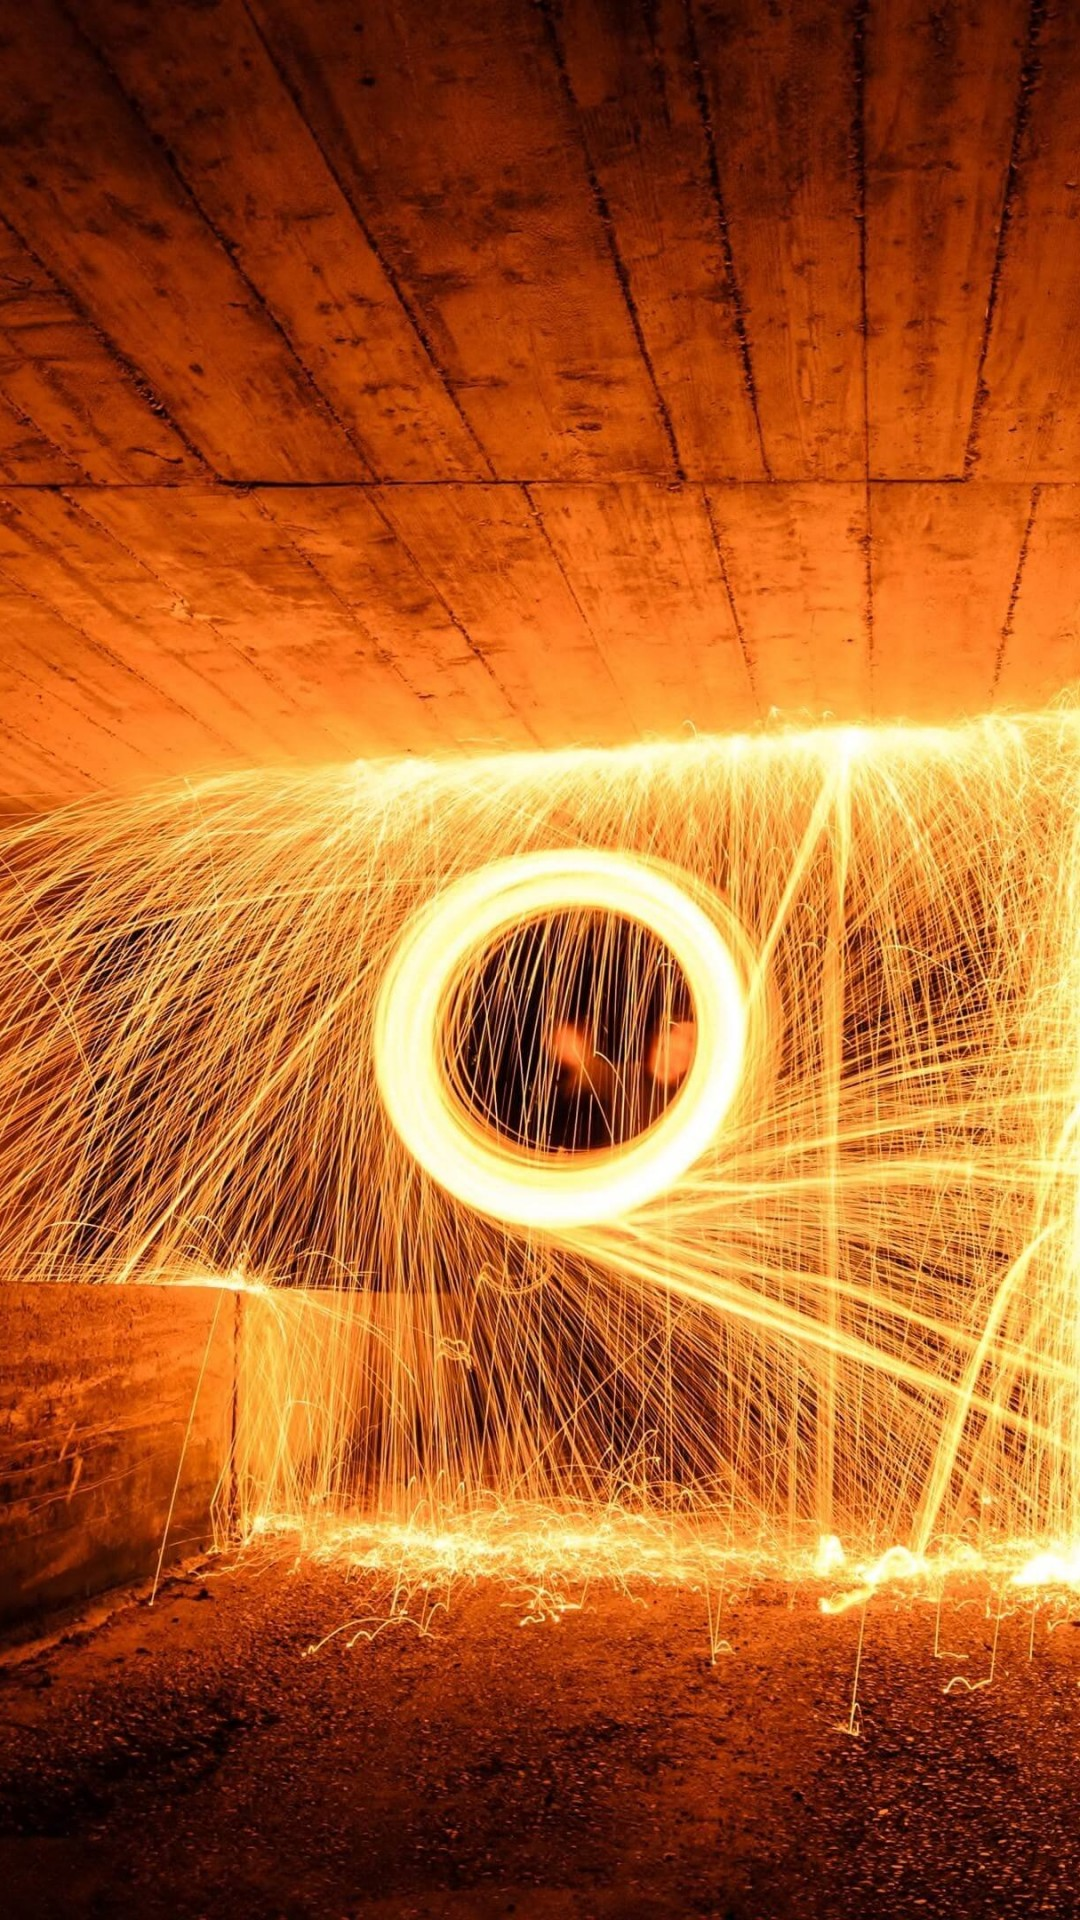 Wire Wool Long Exposure Wallpaper for SONY Xperia Z3